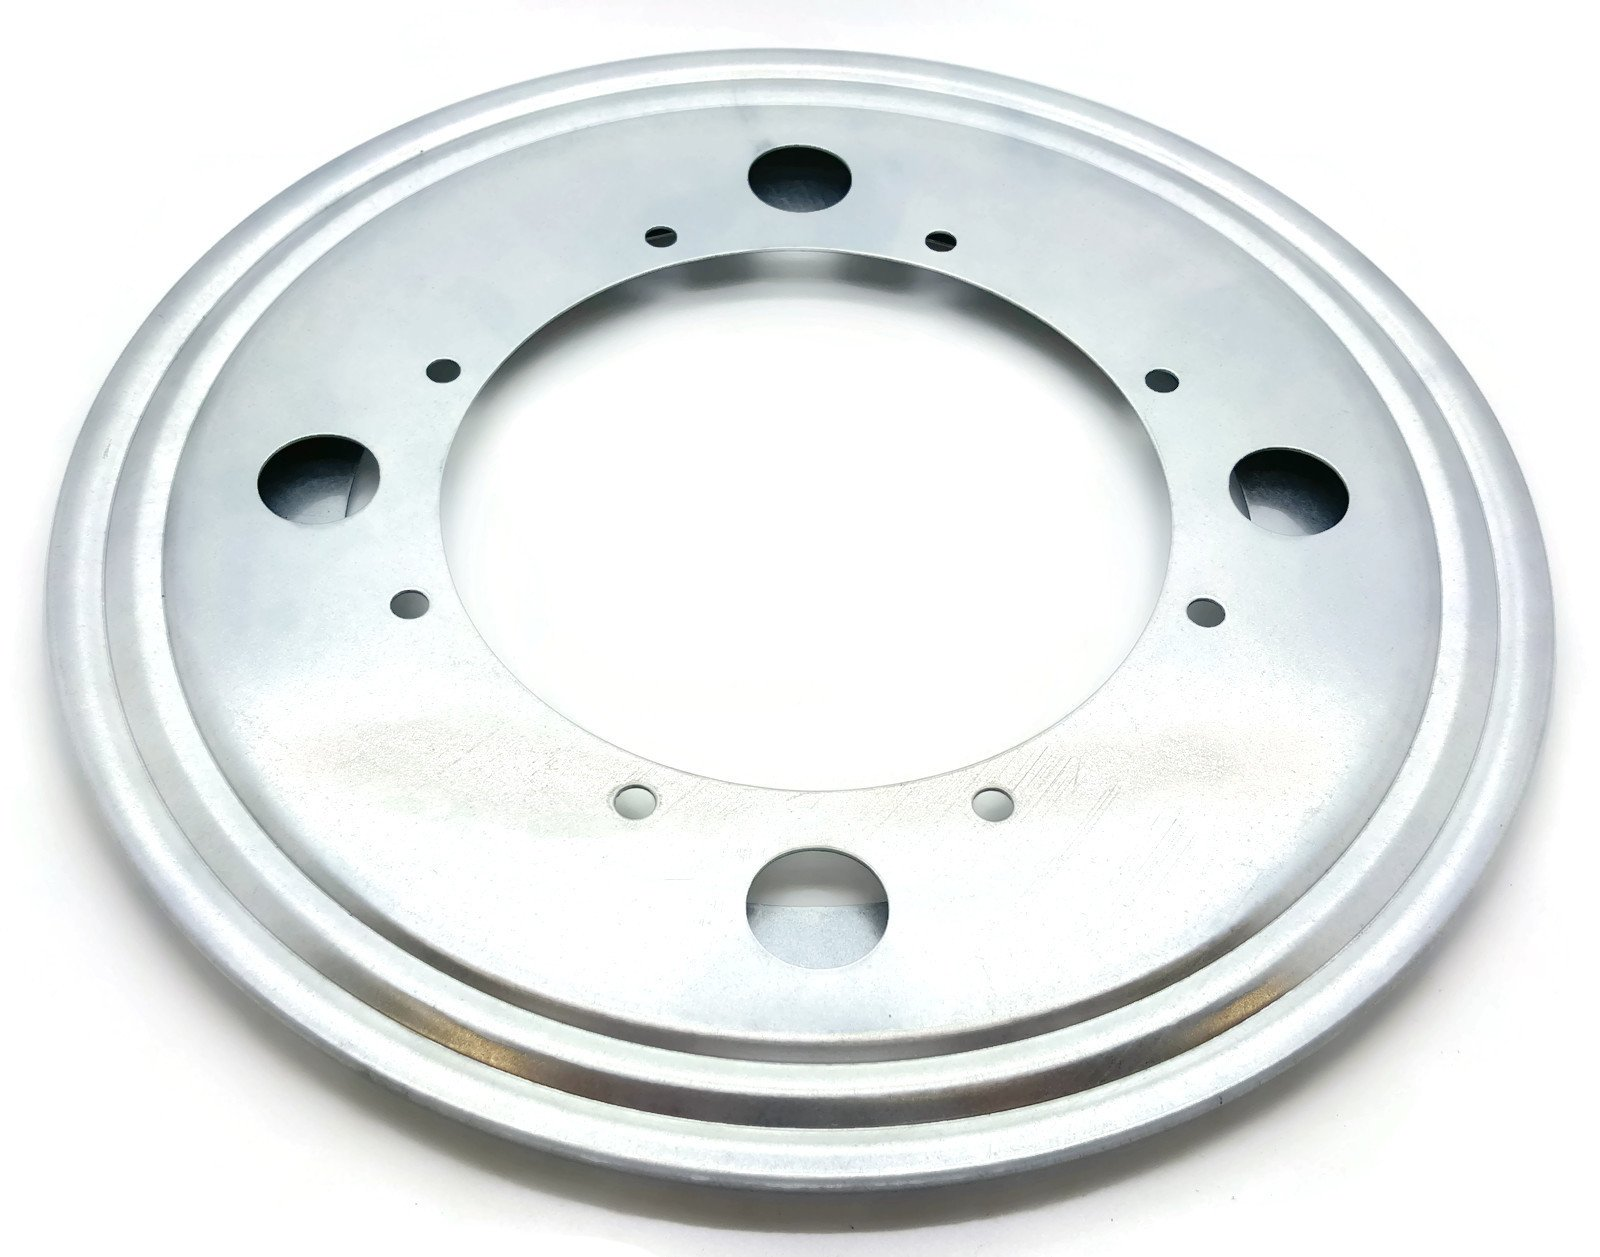 One 8'' Inch Lazy Susan Round Turntable Bearing - 5/16 Thick and 700 Lb Capacity by BC Precision